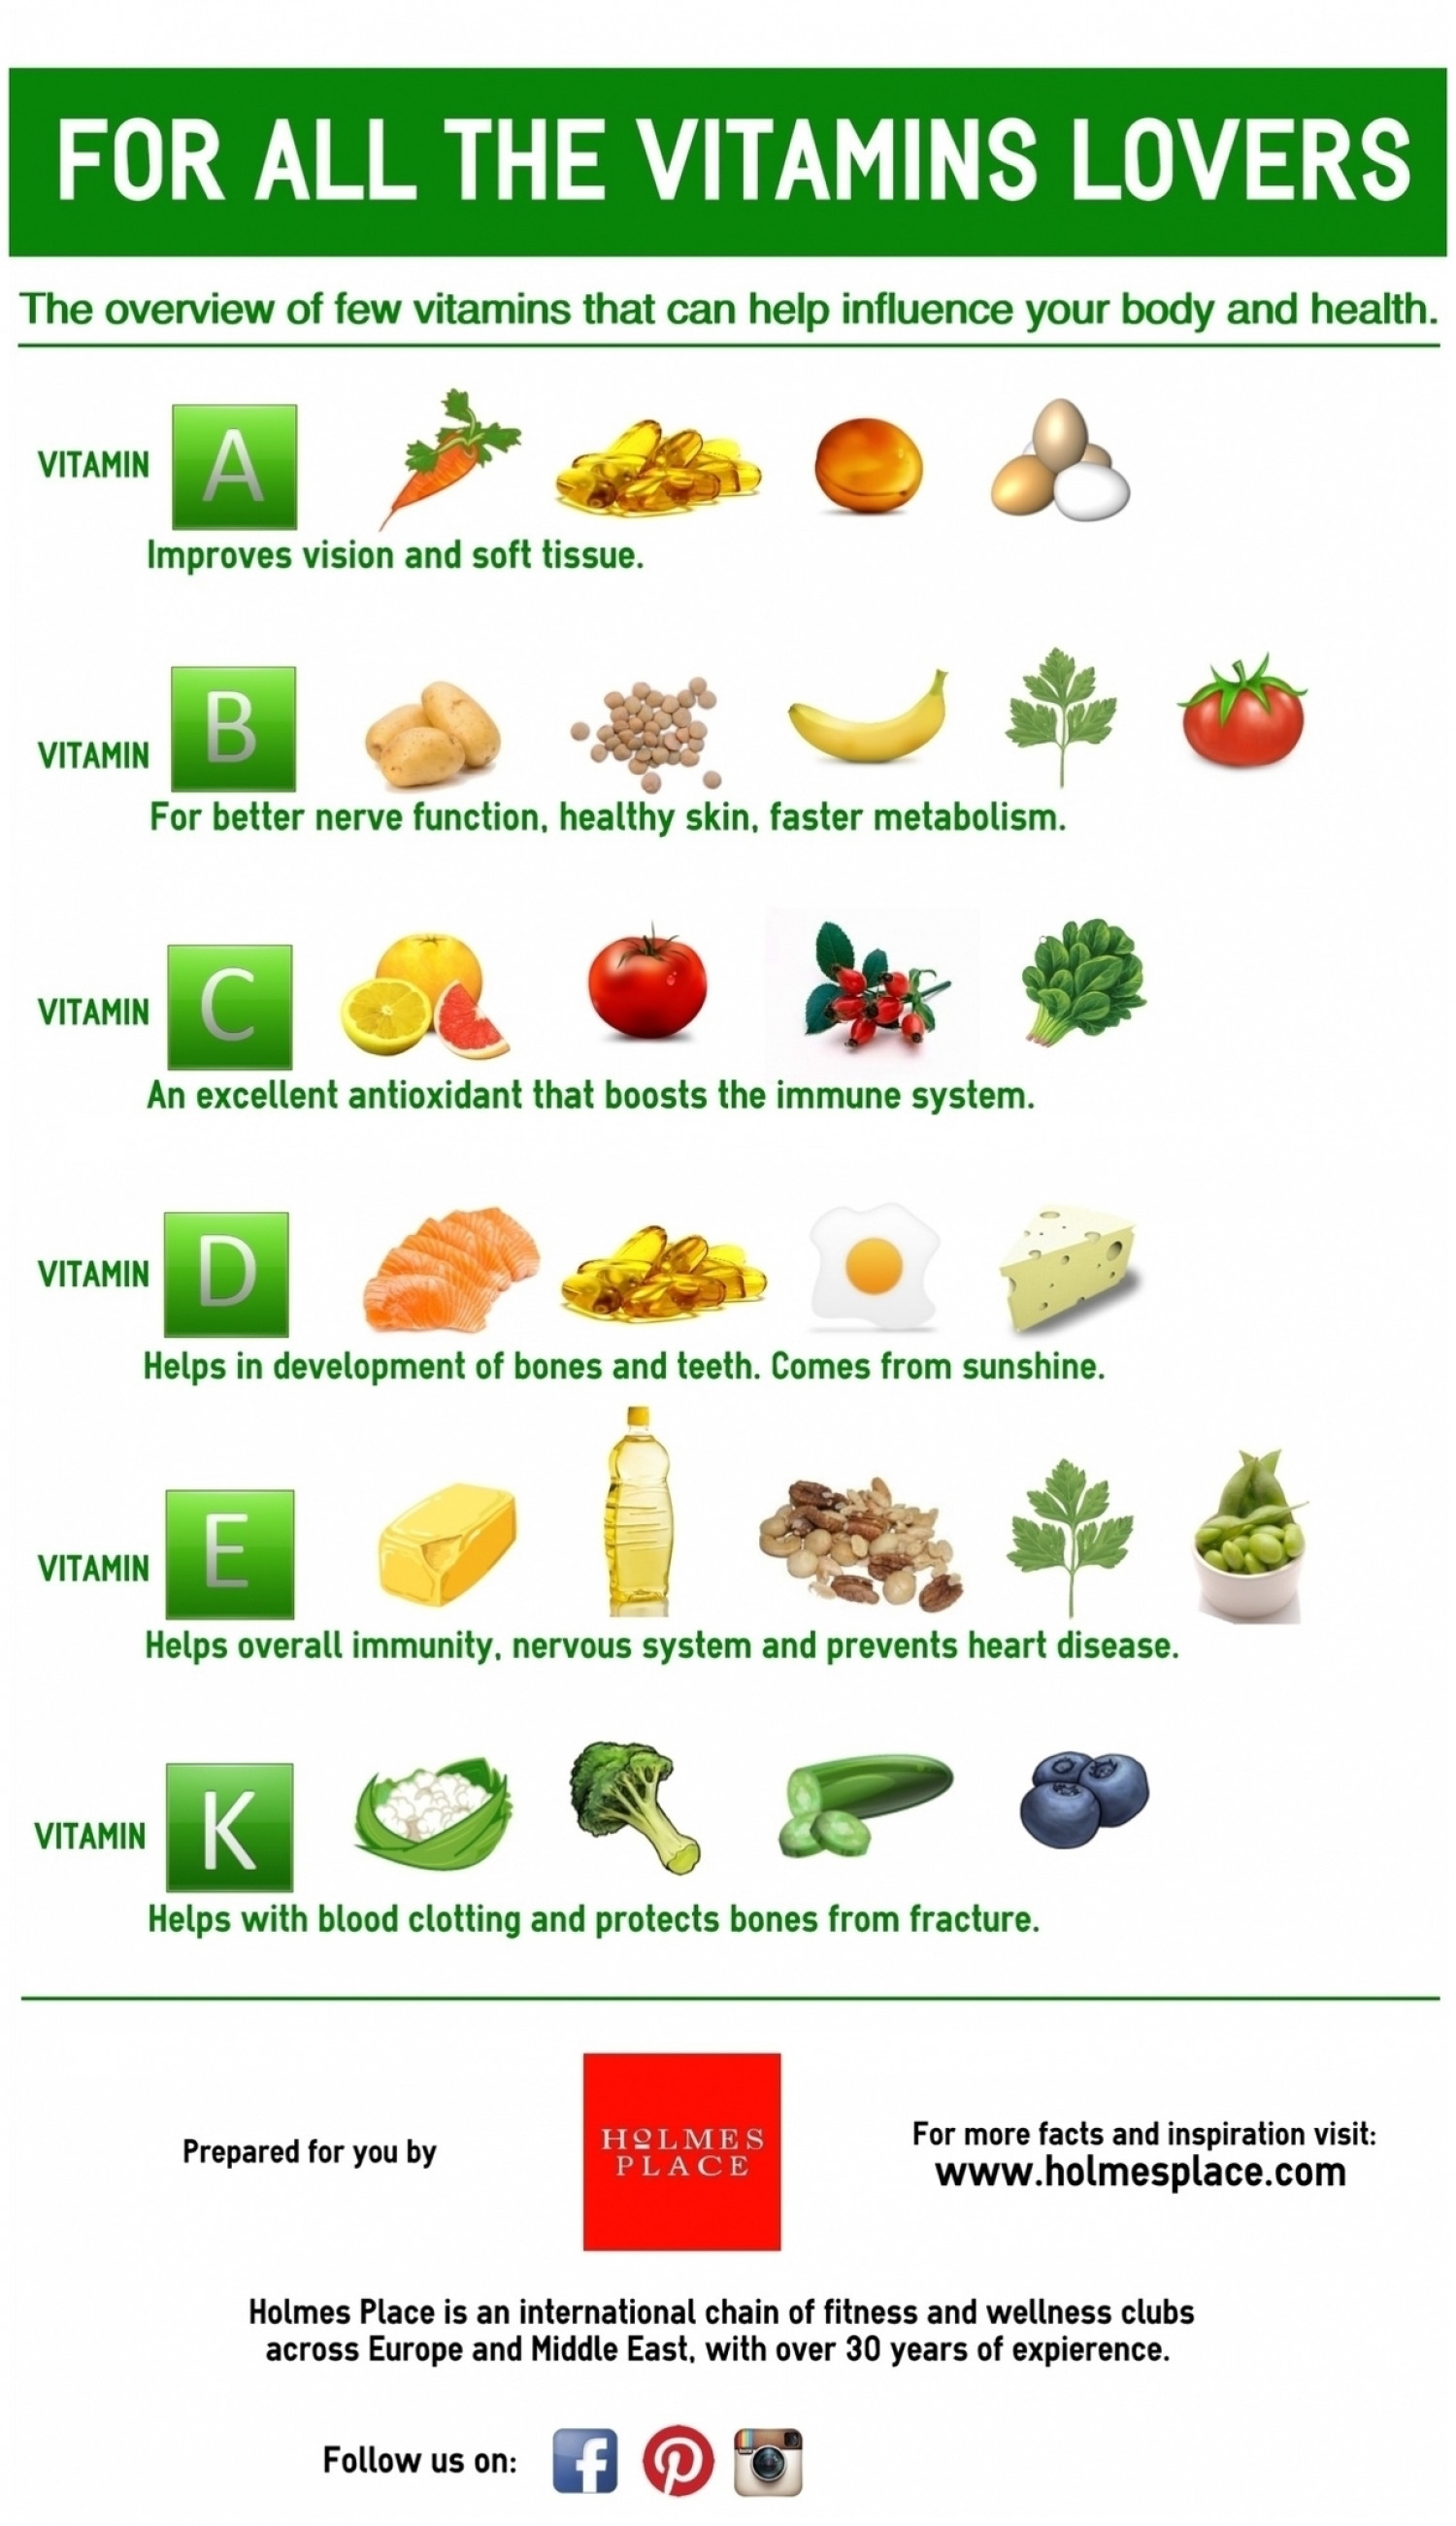 For all the Vitamin lovers! Infographic